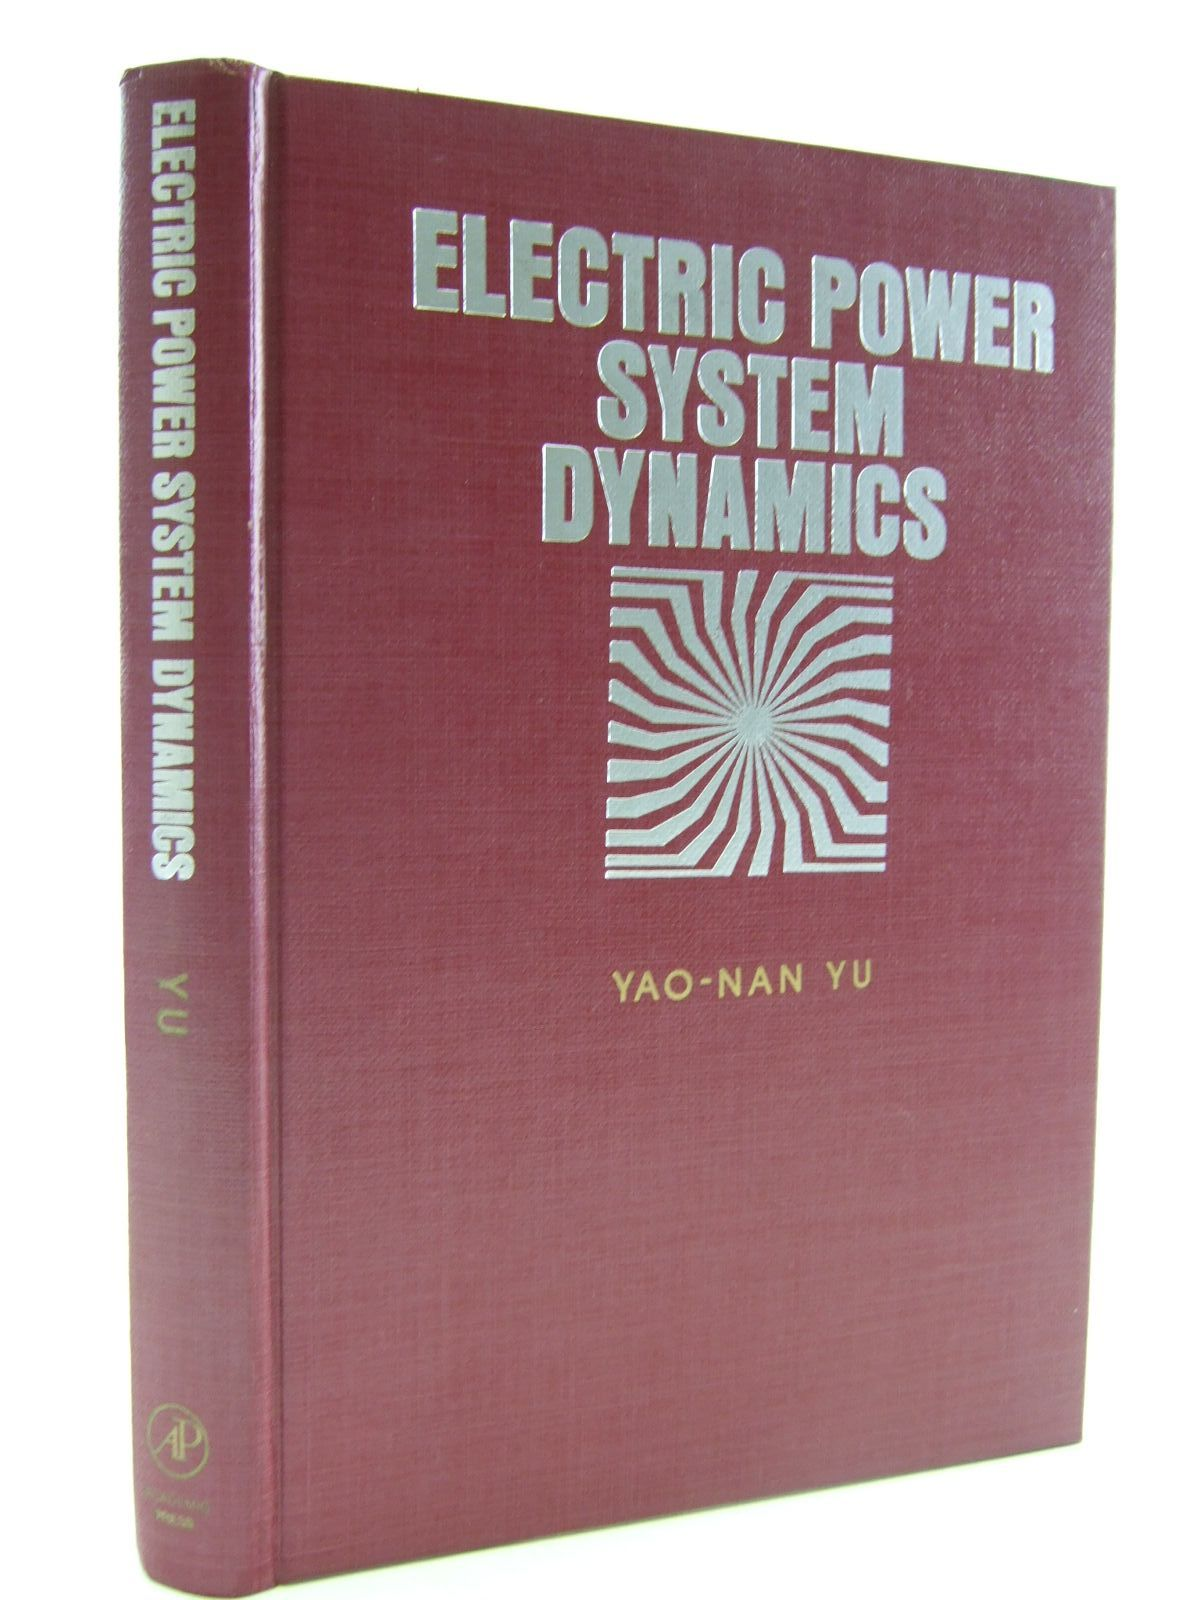 ELECTRIC POWER SYSTEM DYNAMICS written by Yu, Yao-Nan, STOCK